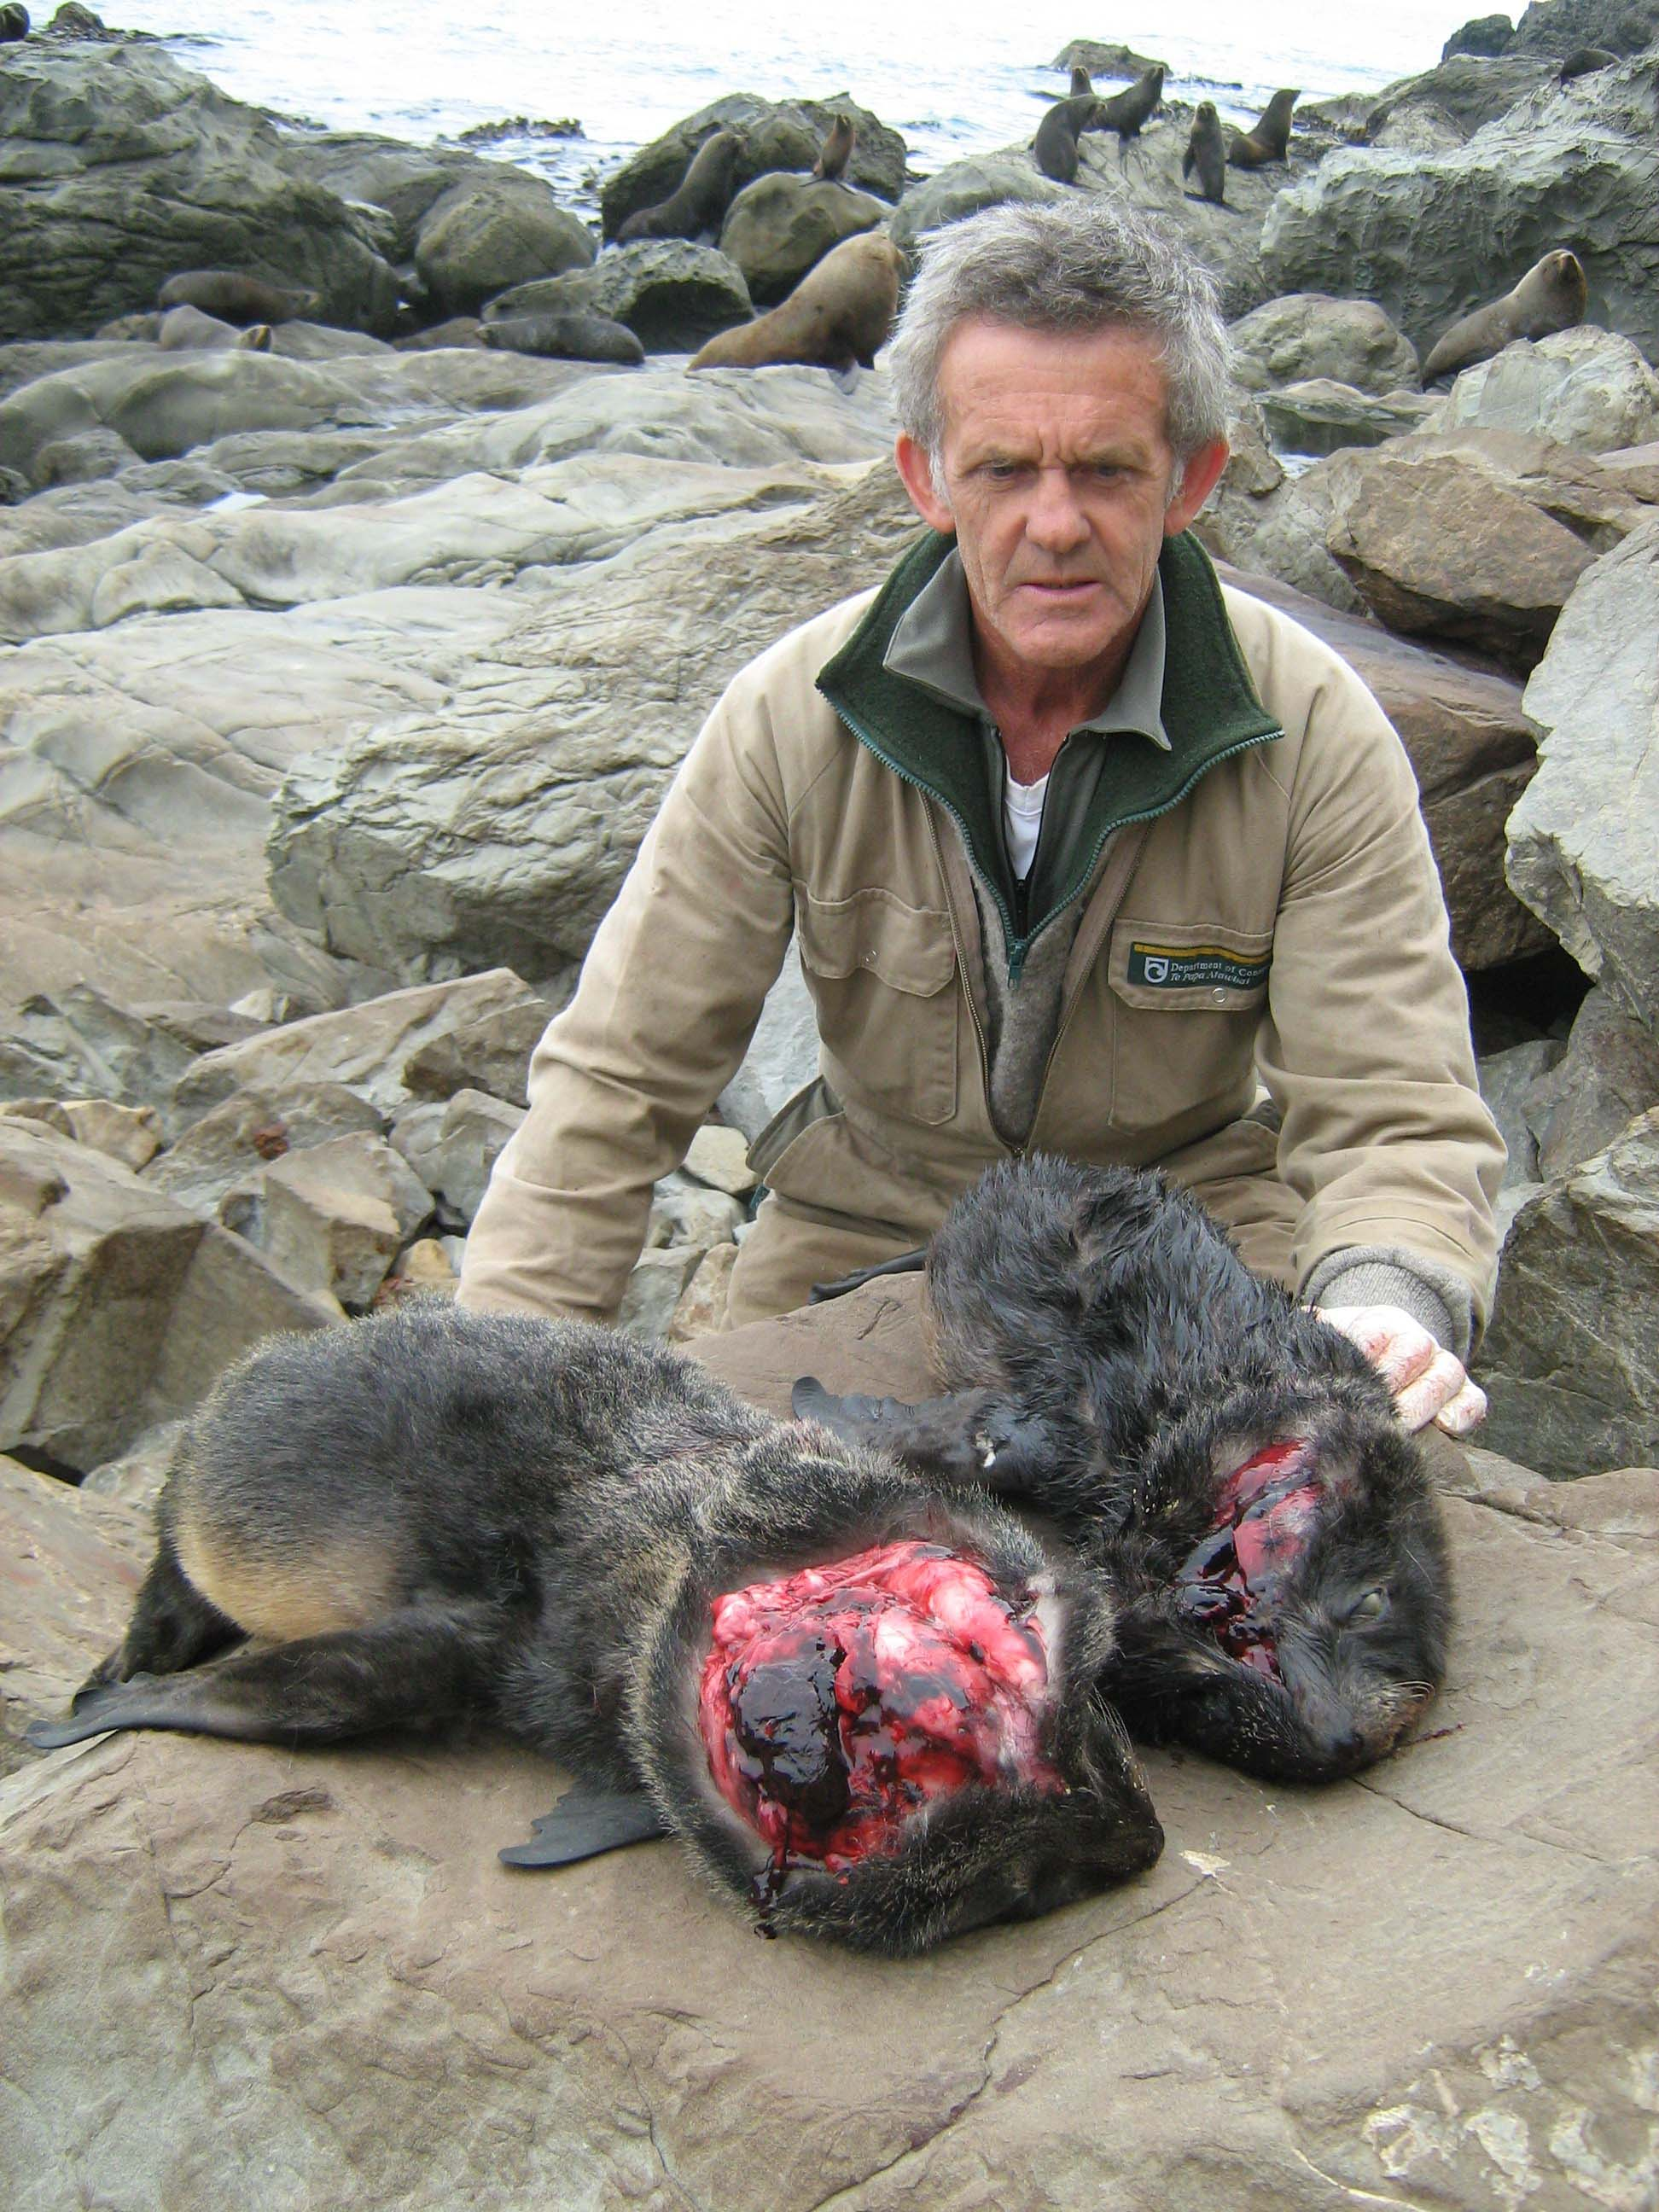 Mike Morrissey and seal pups  source: Department of COnservation